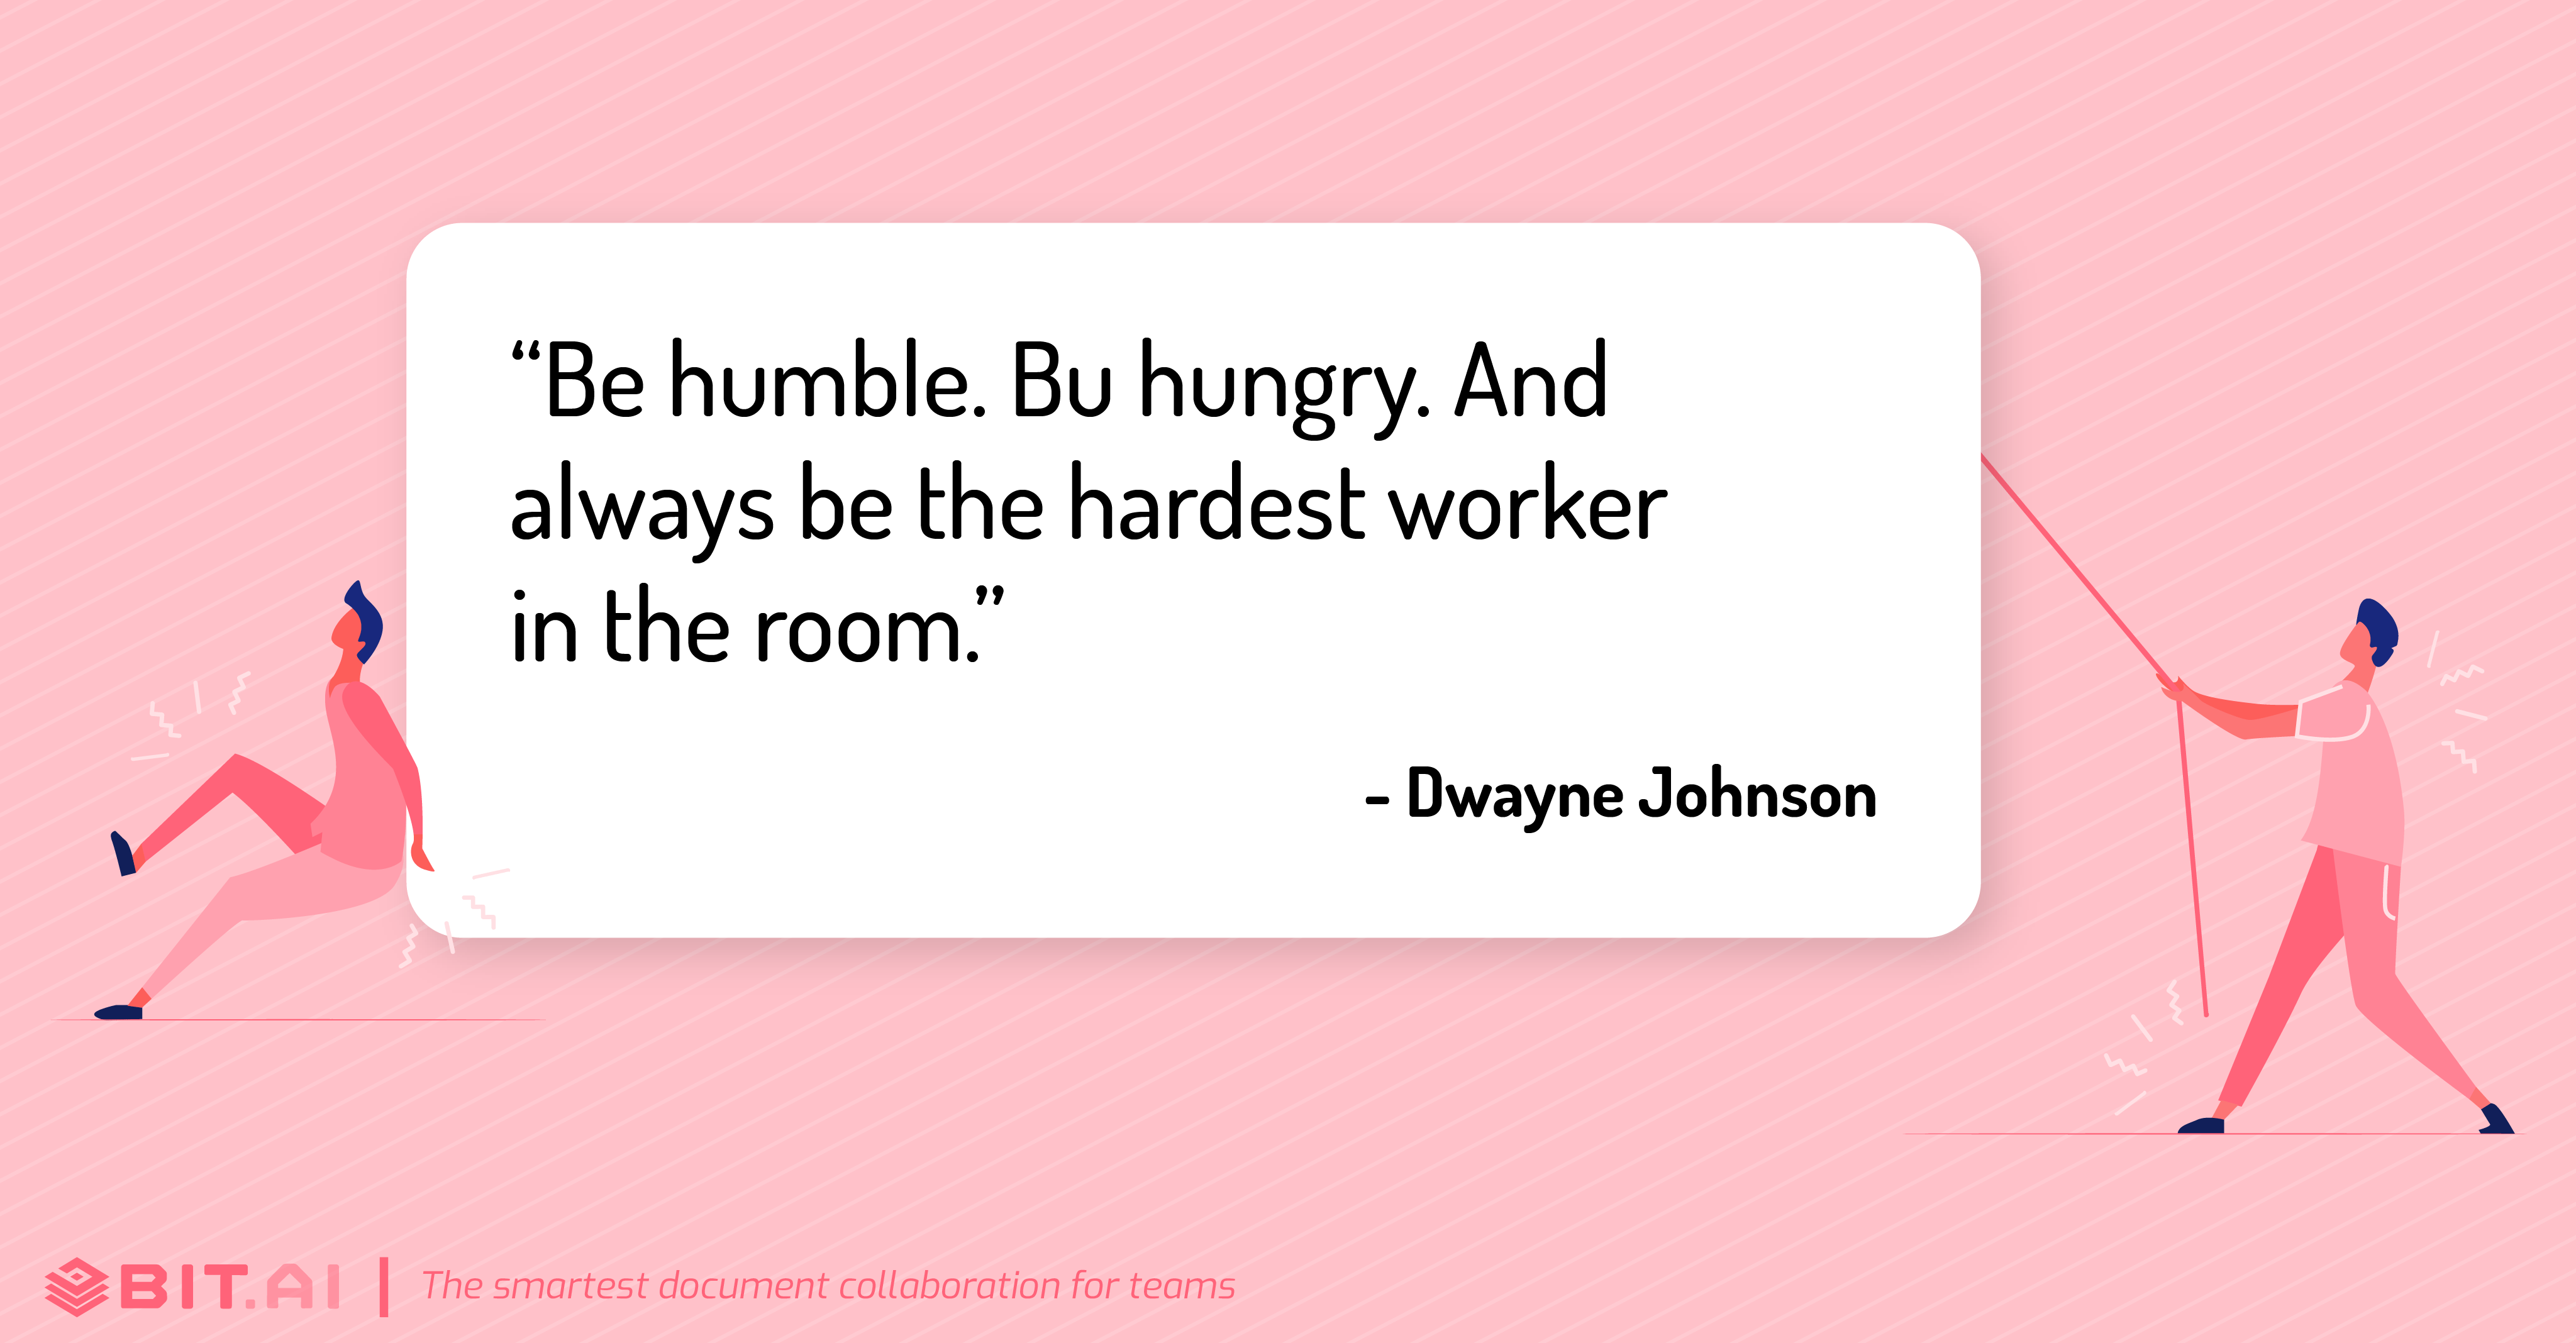 Hard work quote by Dwayne Johnson